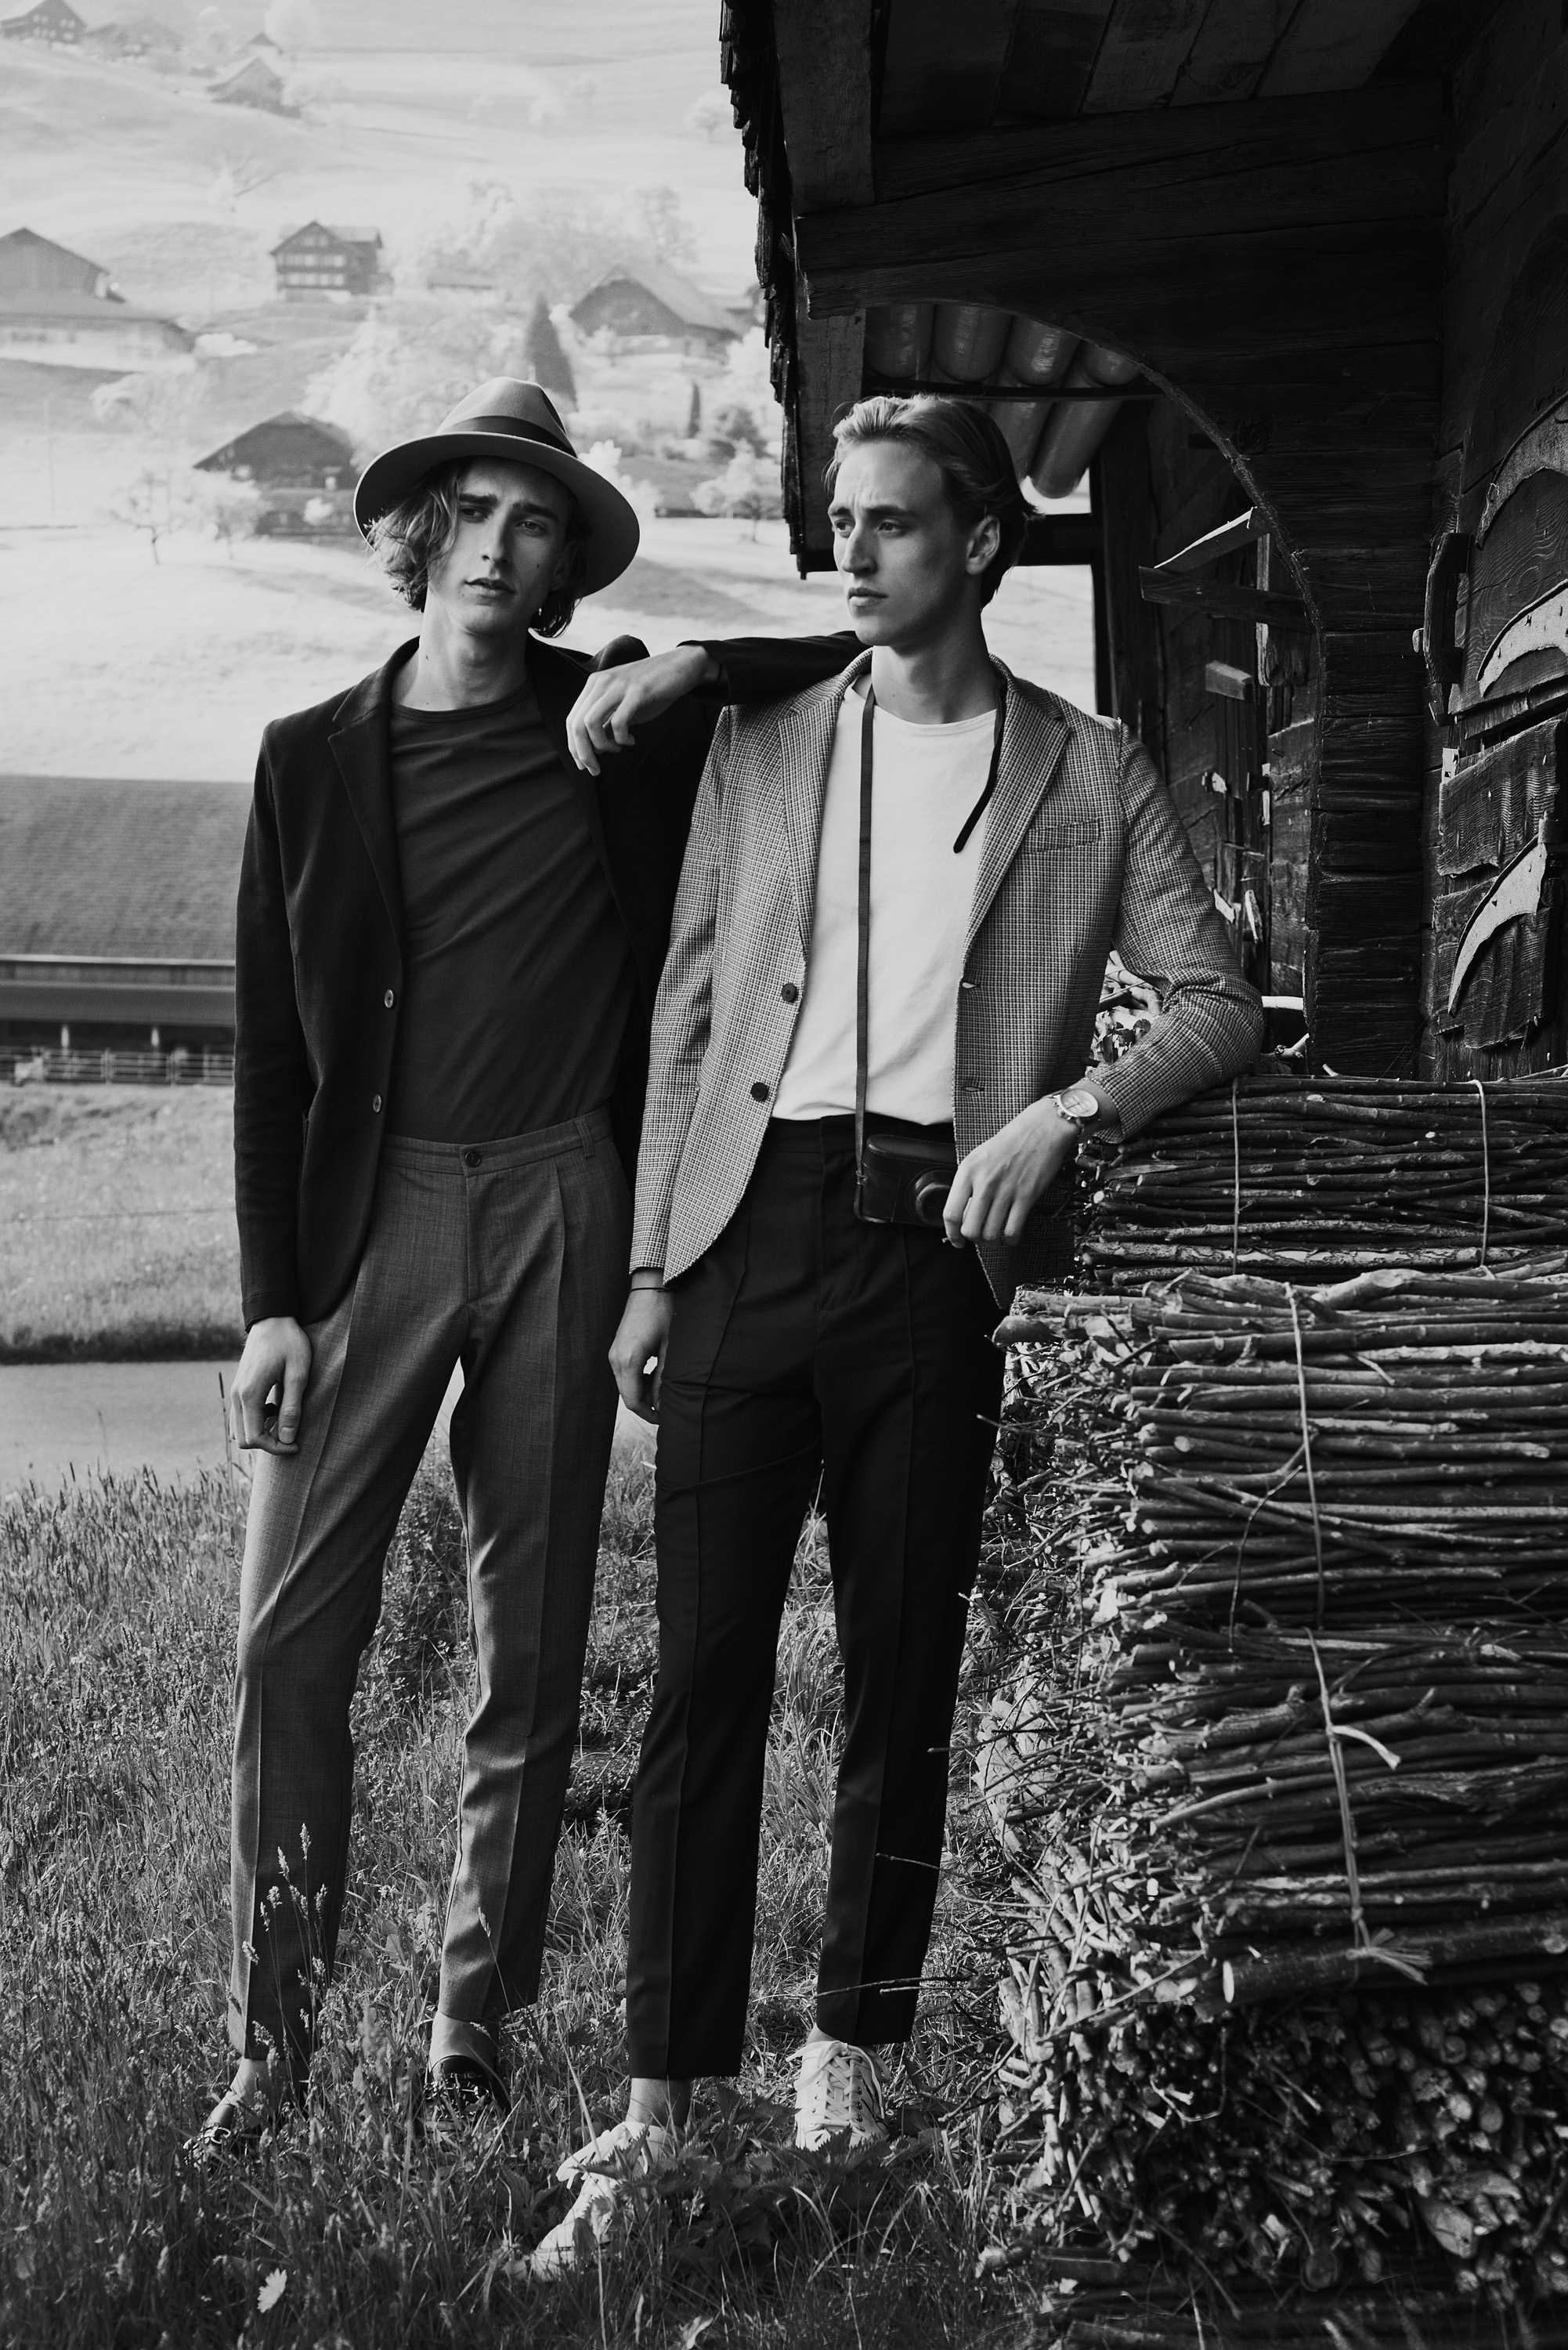 Oliver wears blazer by Harris Wharf, top by  Asket , trousers by Fidelio, loafers by Gucci and hat by  Stetson . Moritz wears blazer by Harris Wharf, his own top, trousers by Plac and sneakers by Bally.